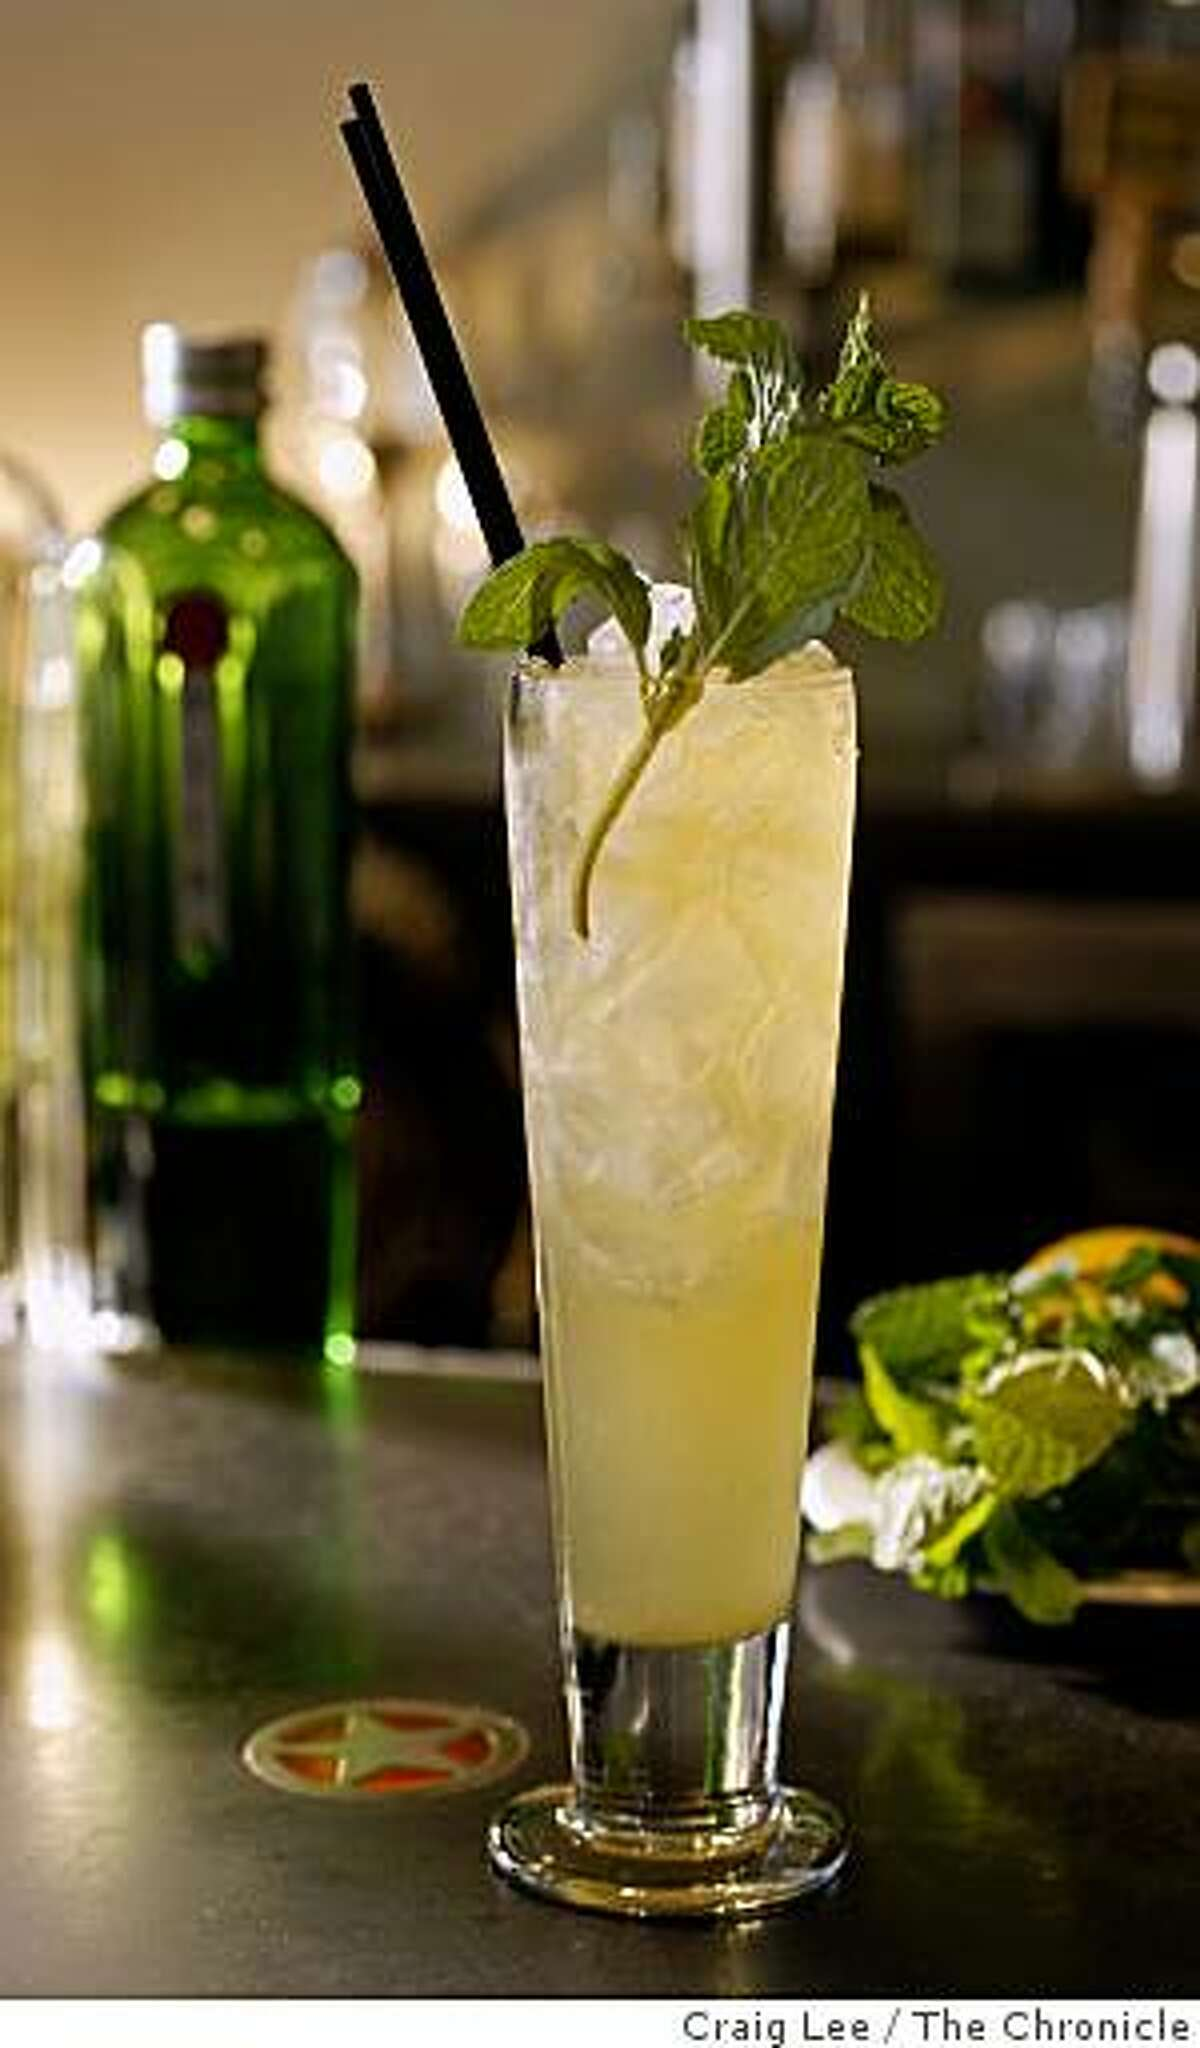 A cocktail drink, called Strange Brew, where beer is one of the ingredients at Range restaurant in San Francisco, Calif., on January 7, 2009.